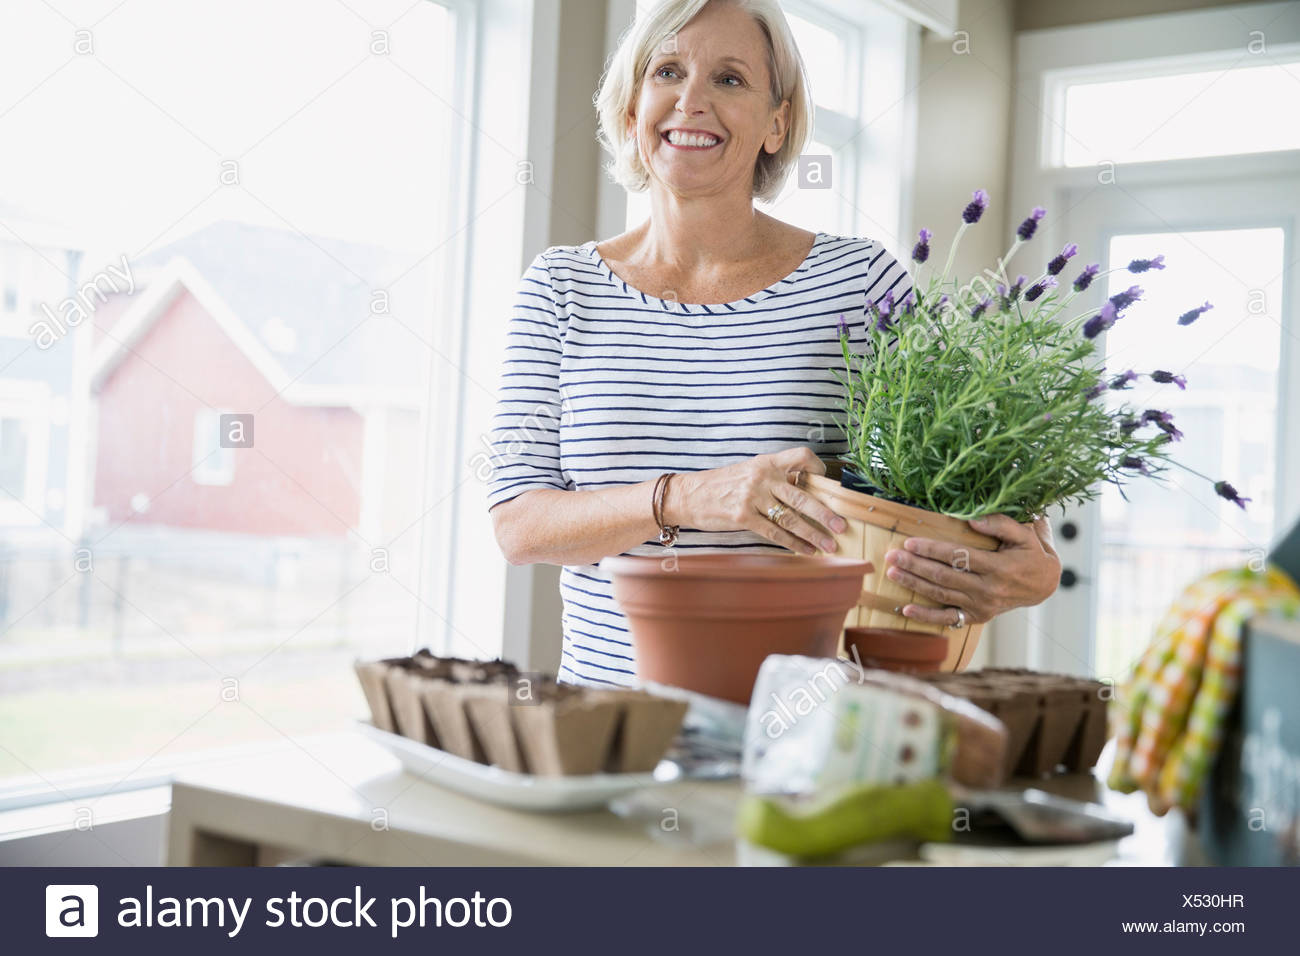 Smiling woman with garden supplies - Stock Image